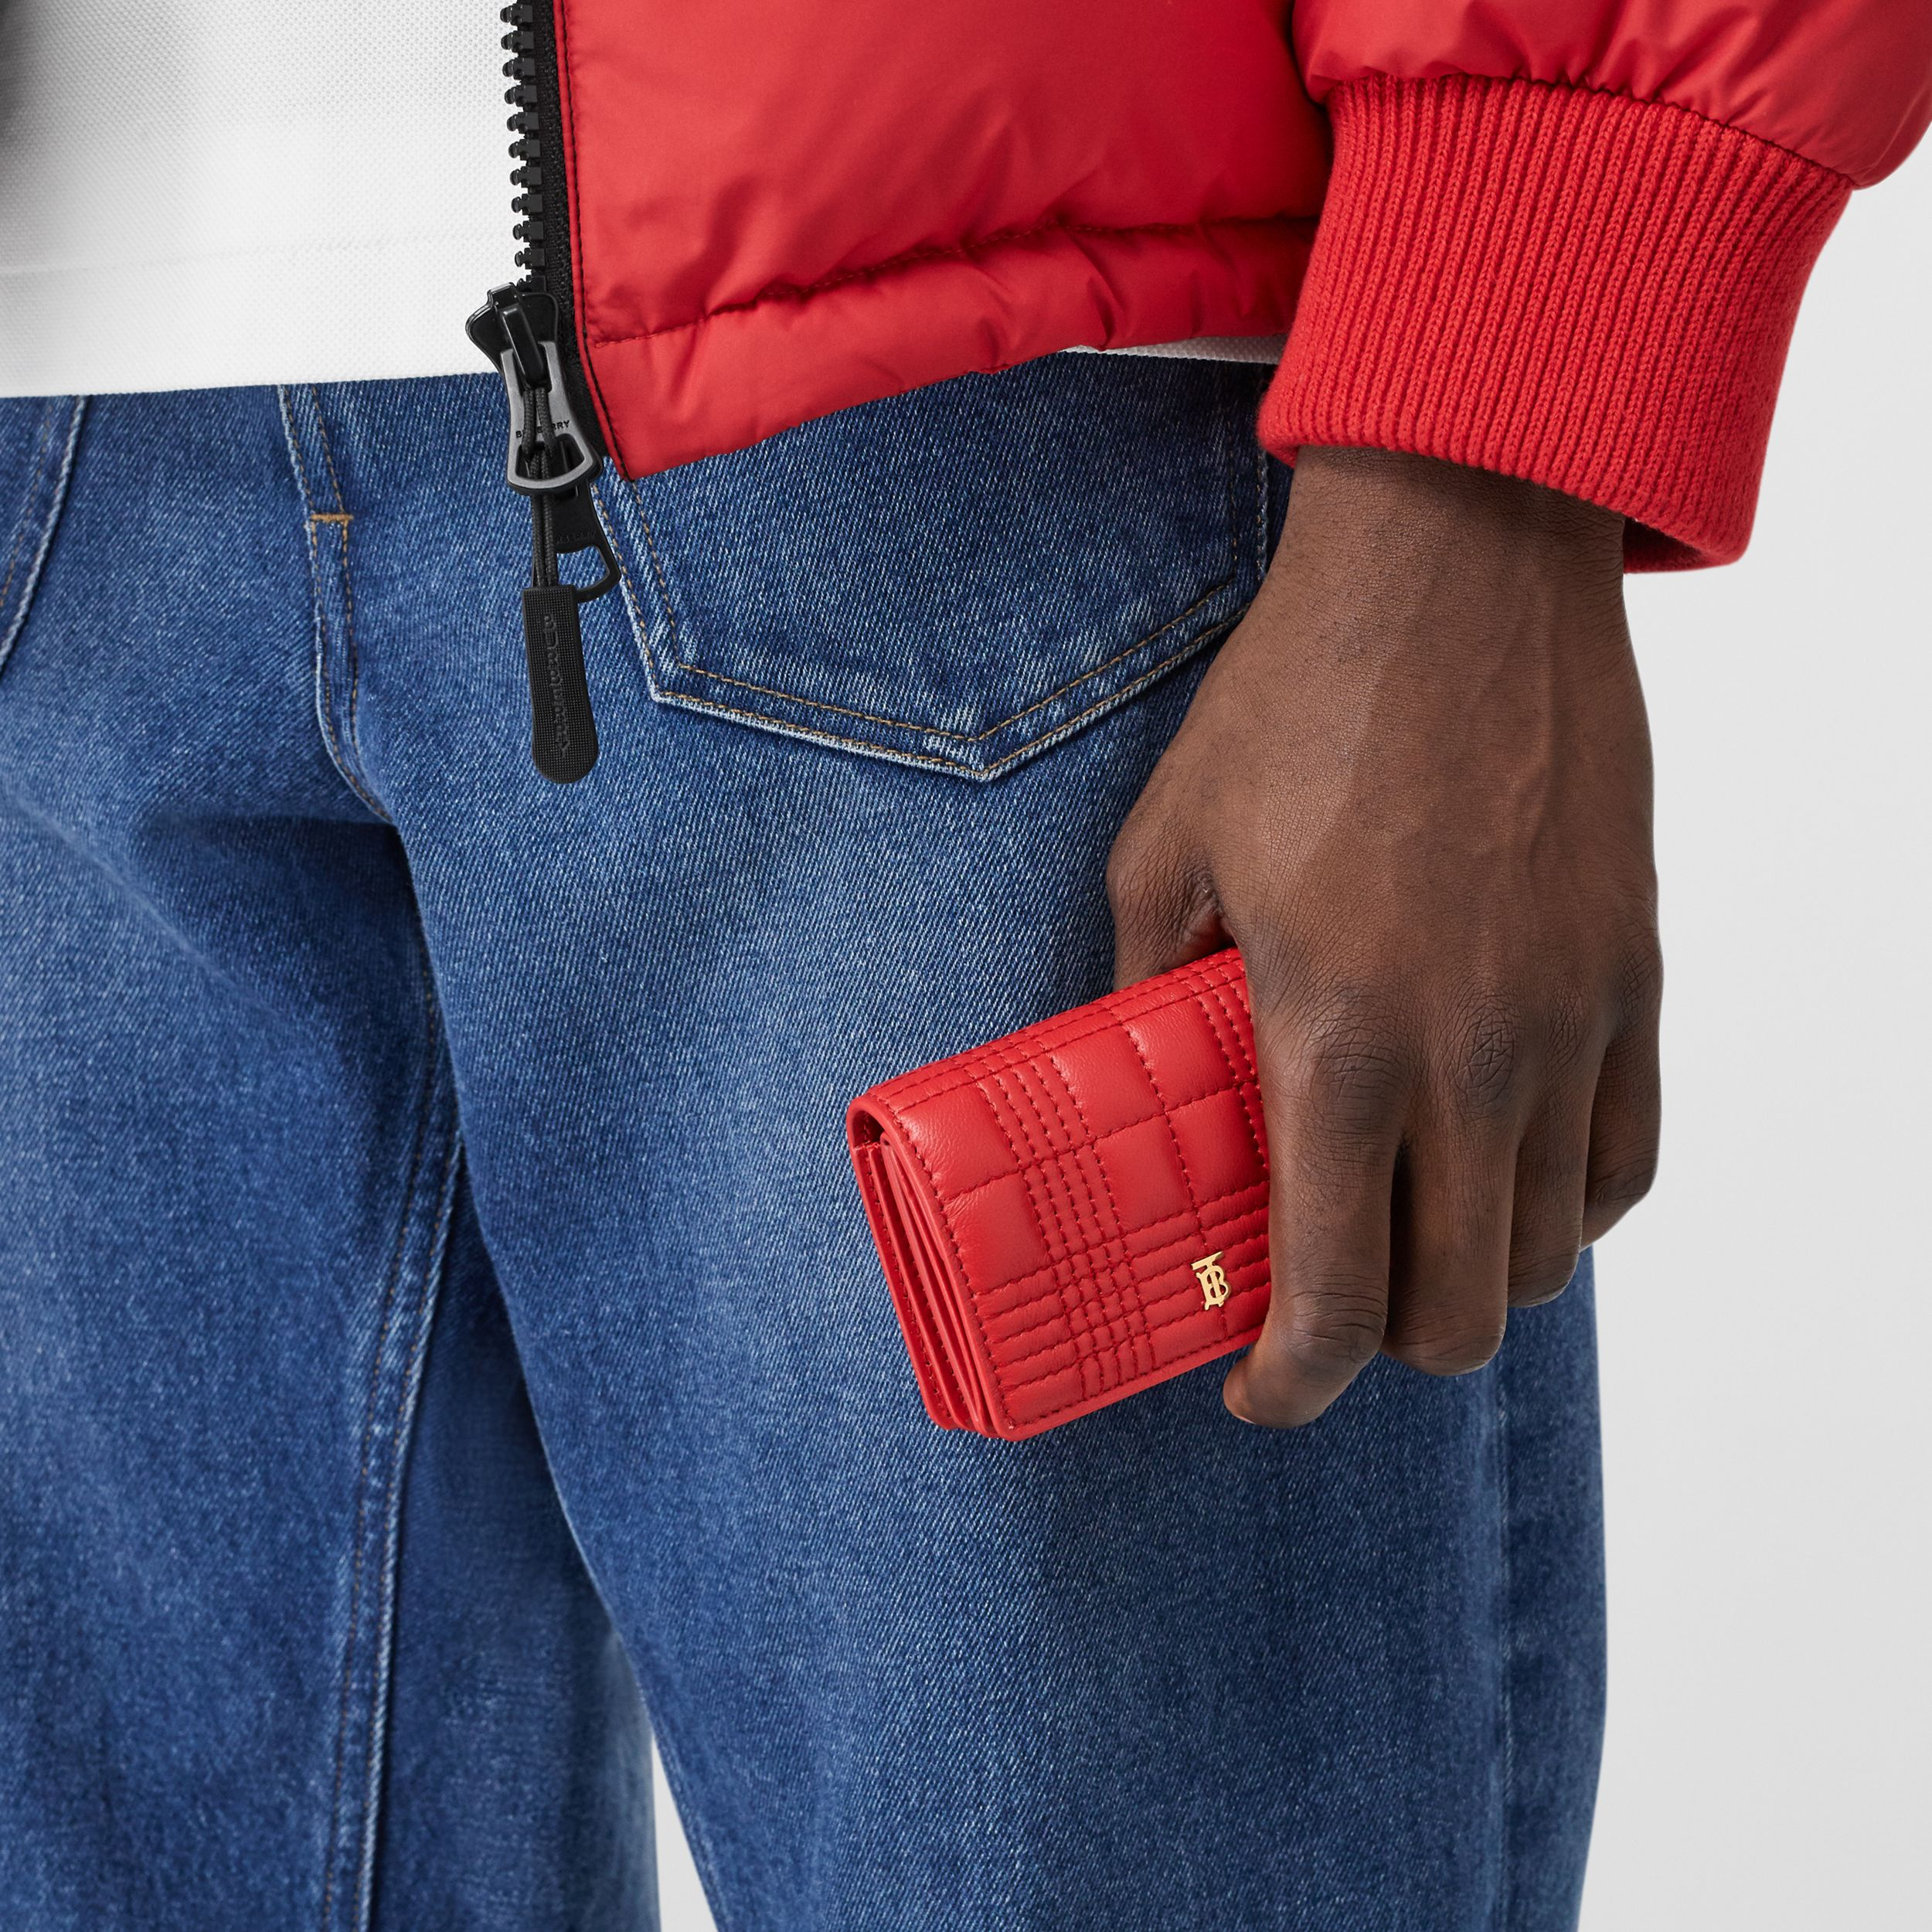 Quilted Lambskin Card Case with Detachable Strap in Bright Red | Burberry - 4